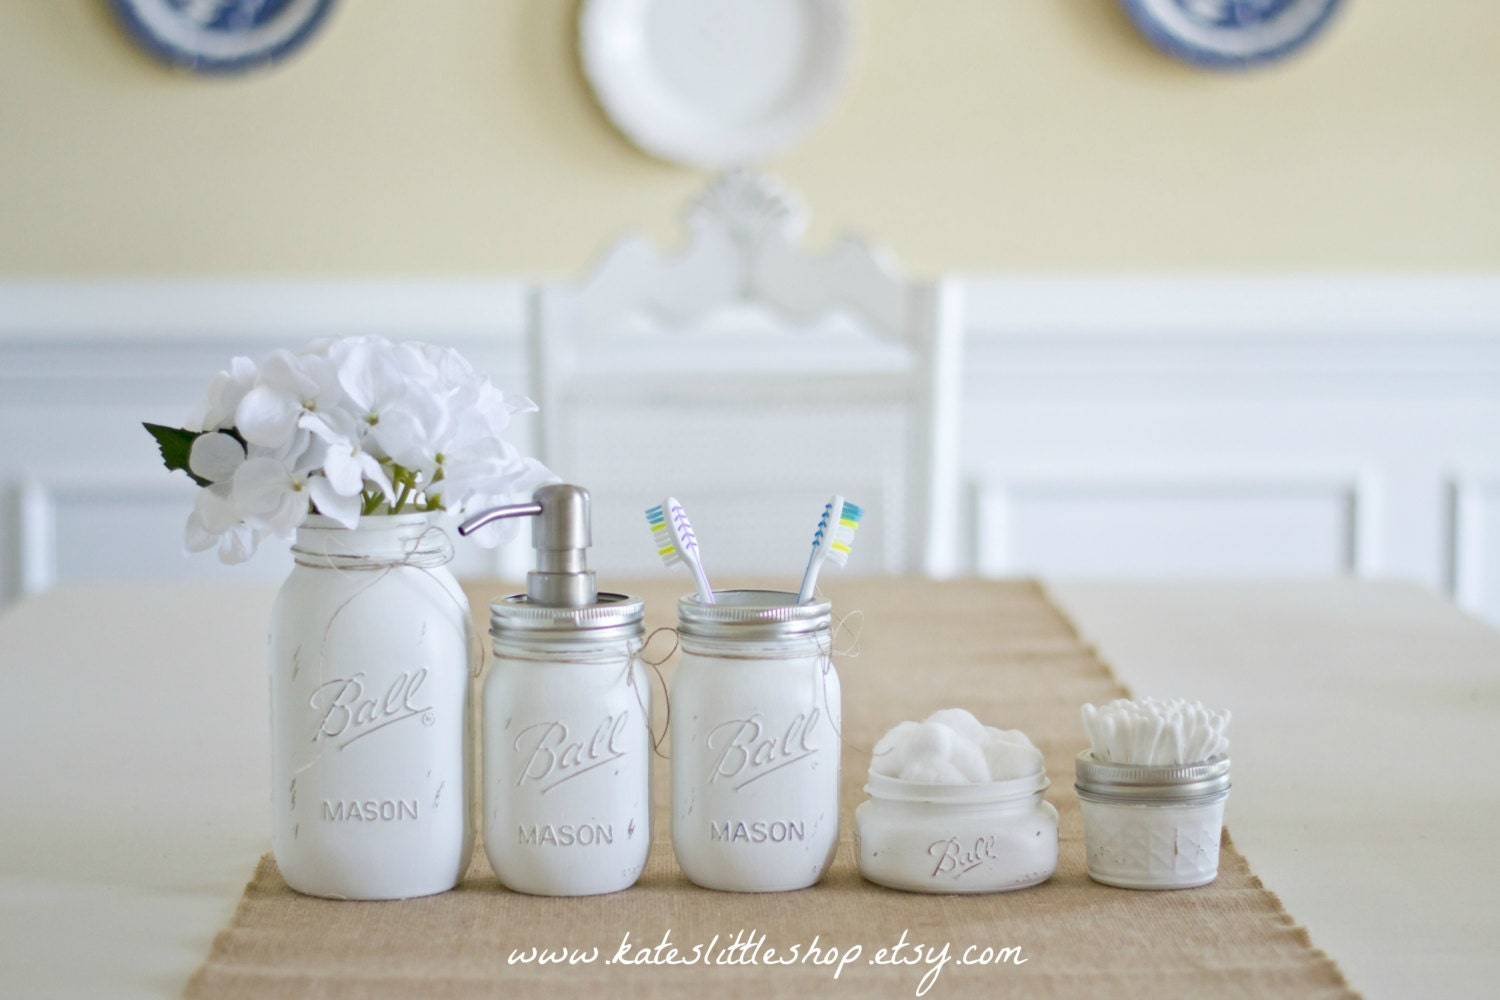 Mason Jar Bathroom Accessories Mason Jar Bathroom Set White Ball Mason Jars Rustic Home